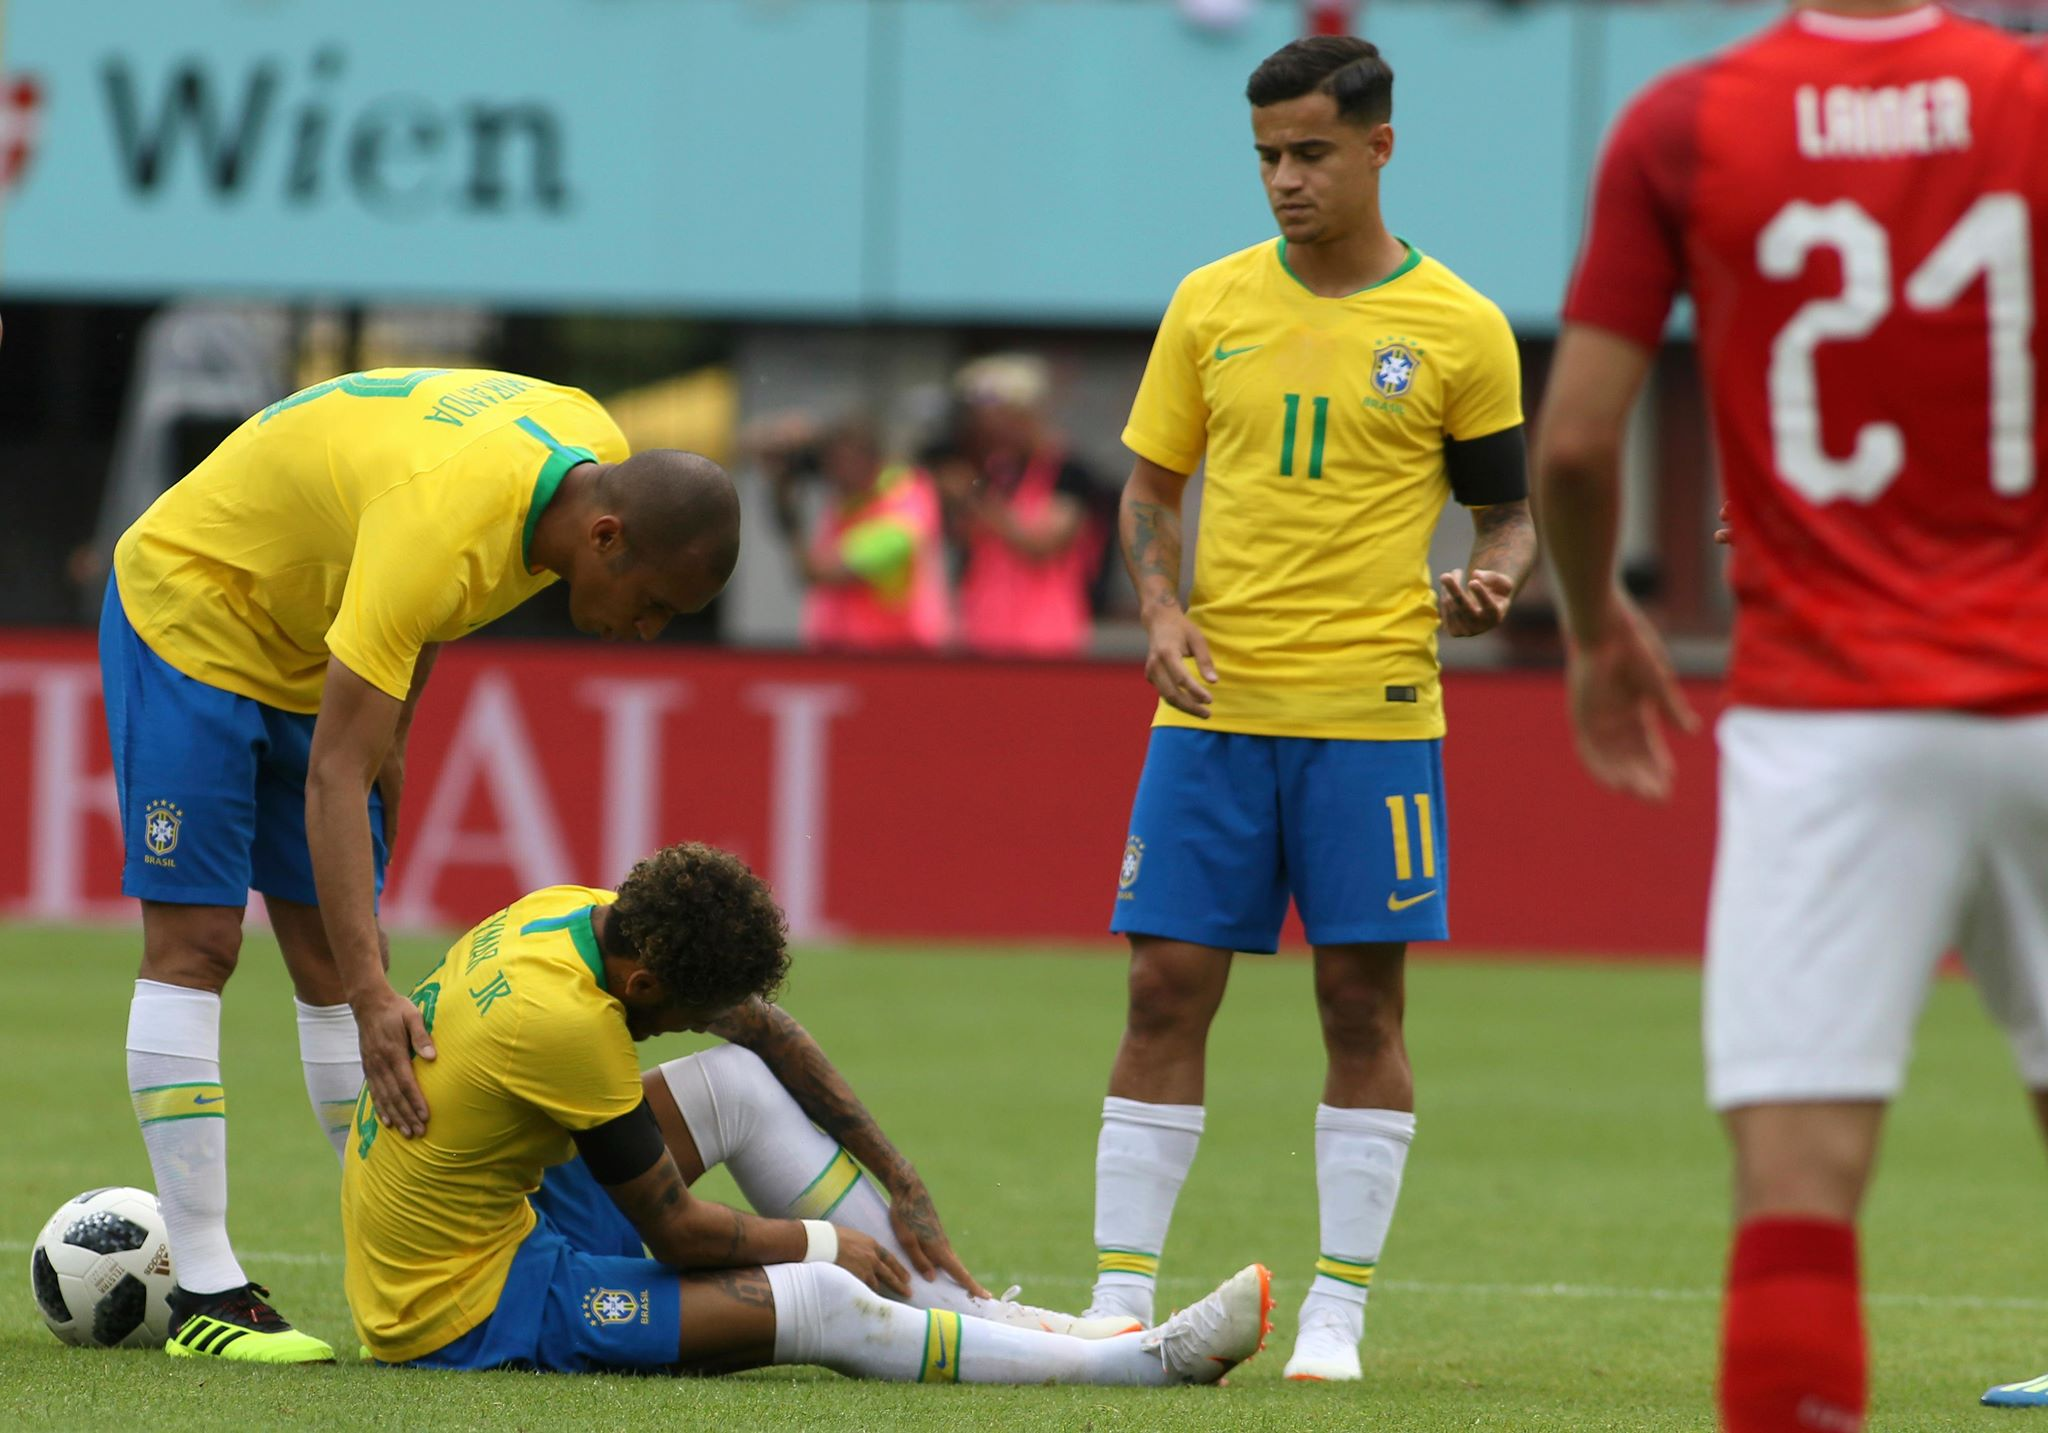 More pain for Neymar. Image: PA